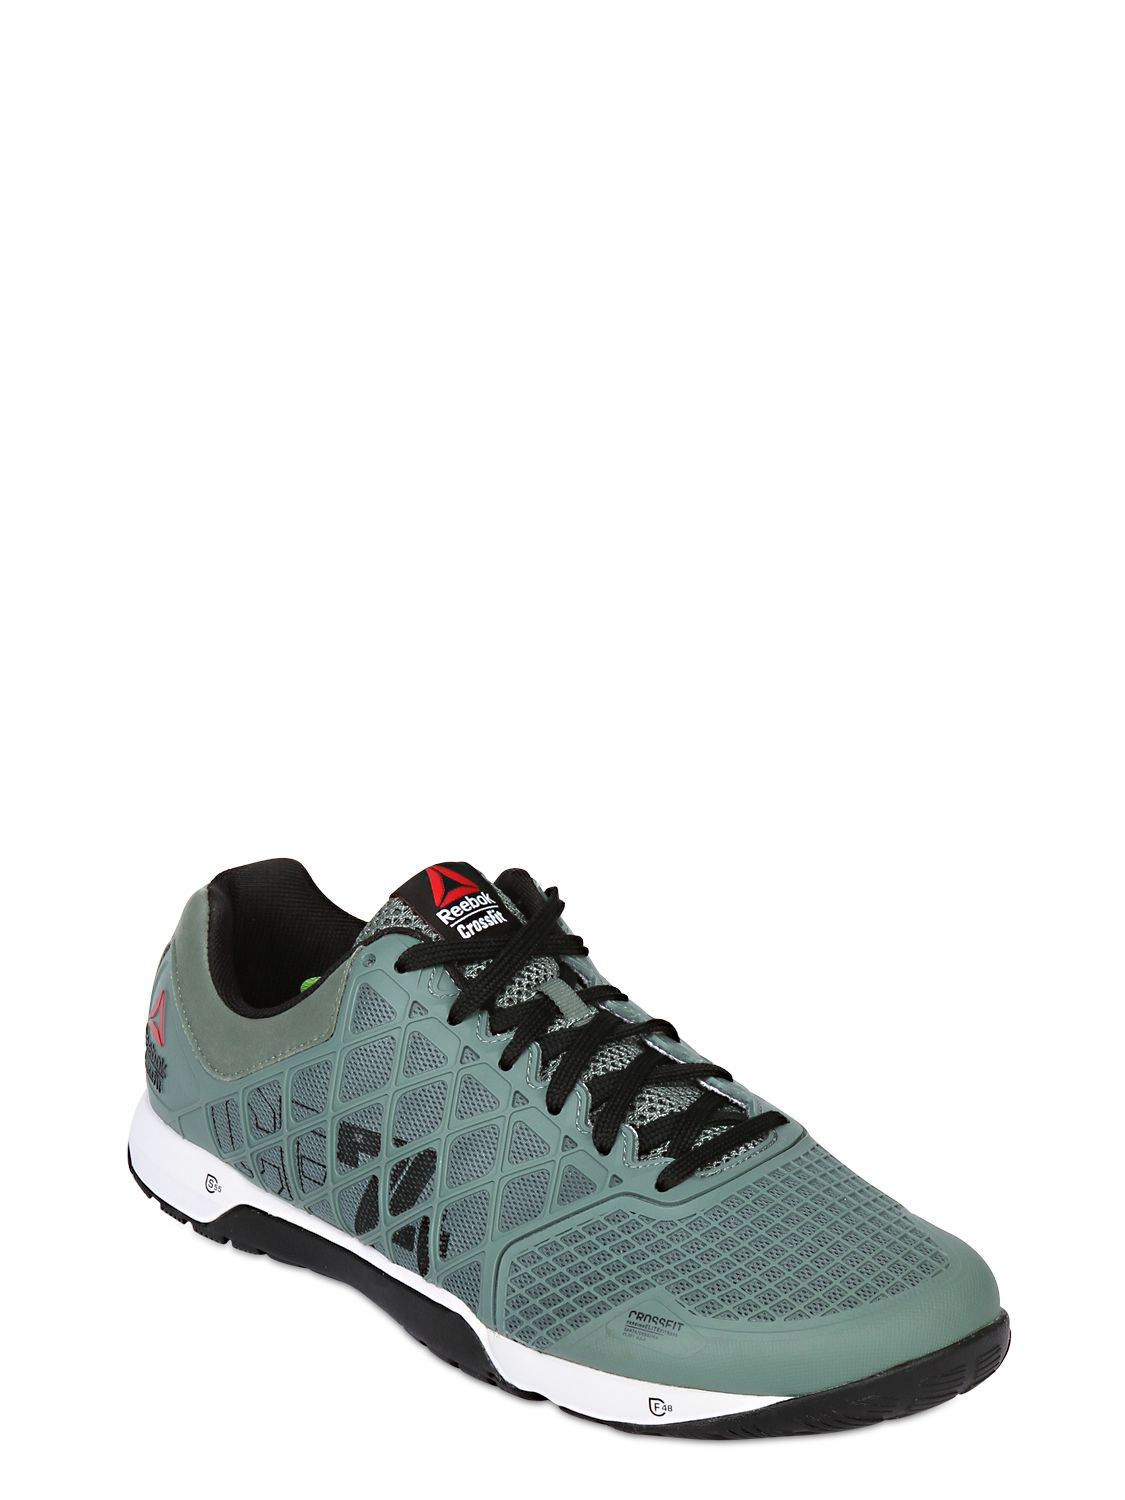 Reebok White Royal Jogger 2l Running Shoes Green Yellow One Guide 30 Stabilty Coal Gallery